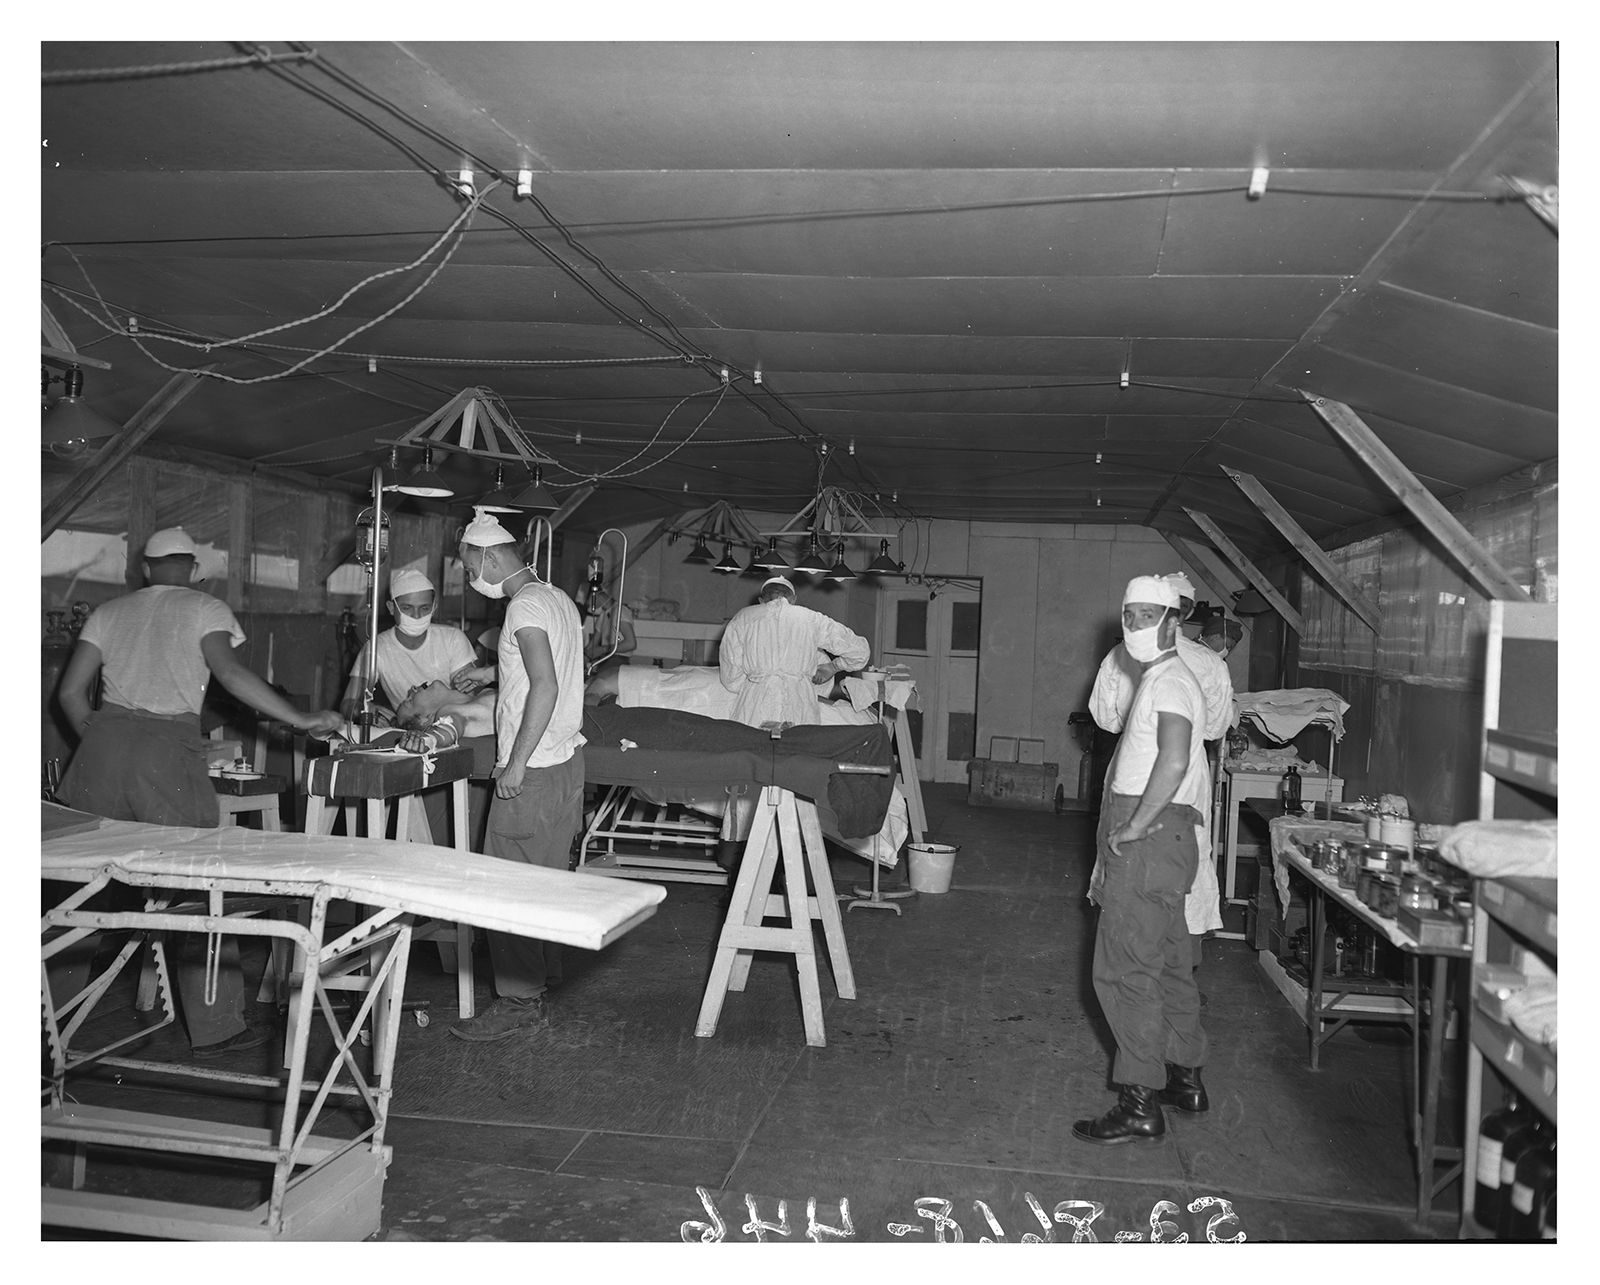 An operating tent where military surgions are working on two patients. & MASH units were conceived and developed by DeBakey and the ...